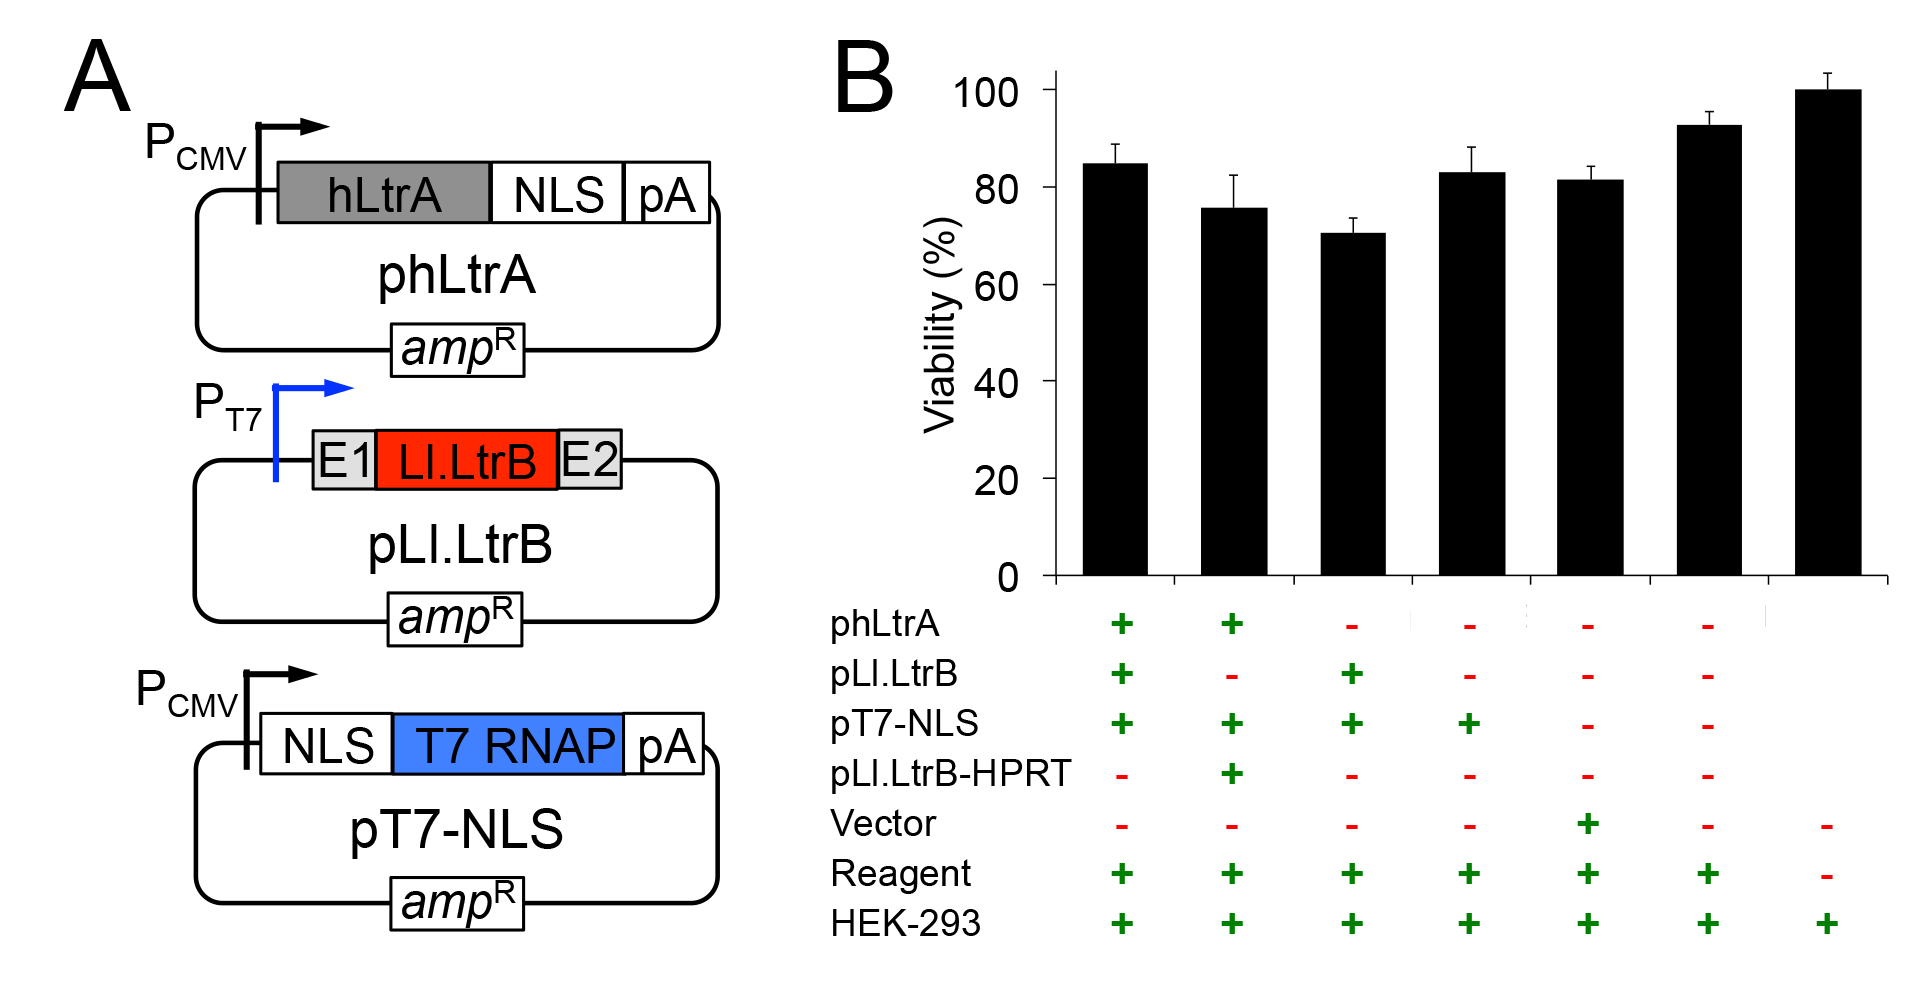 Plasmids used for expressing the mobile Ll.LtrB group II intron in human cells and their effect on cell viability.